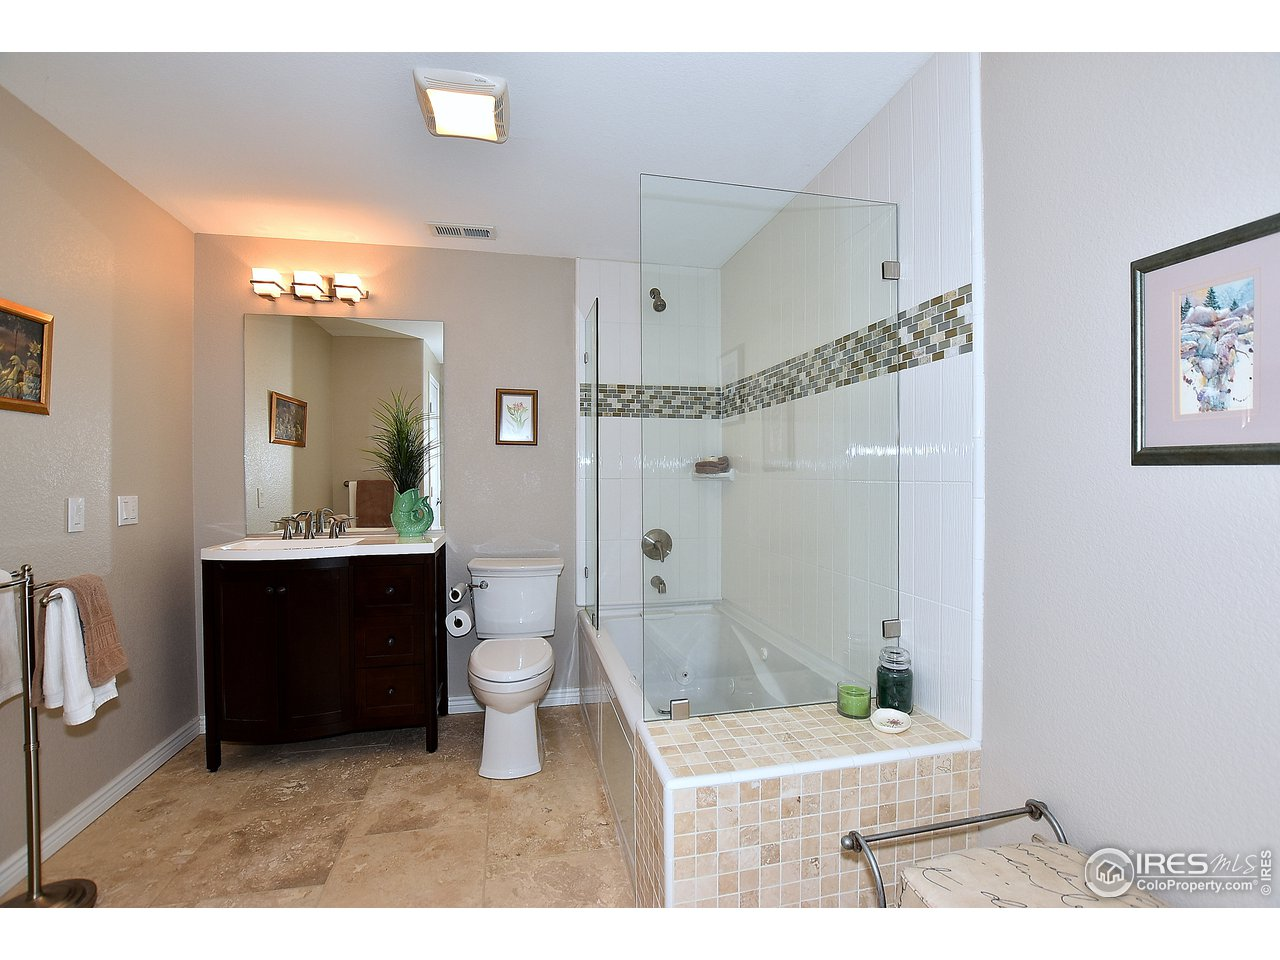 Basement bath with jetted tub.